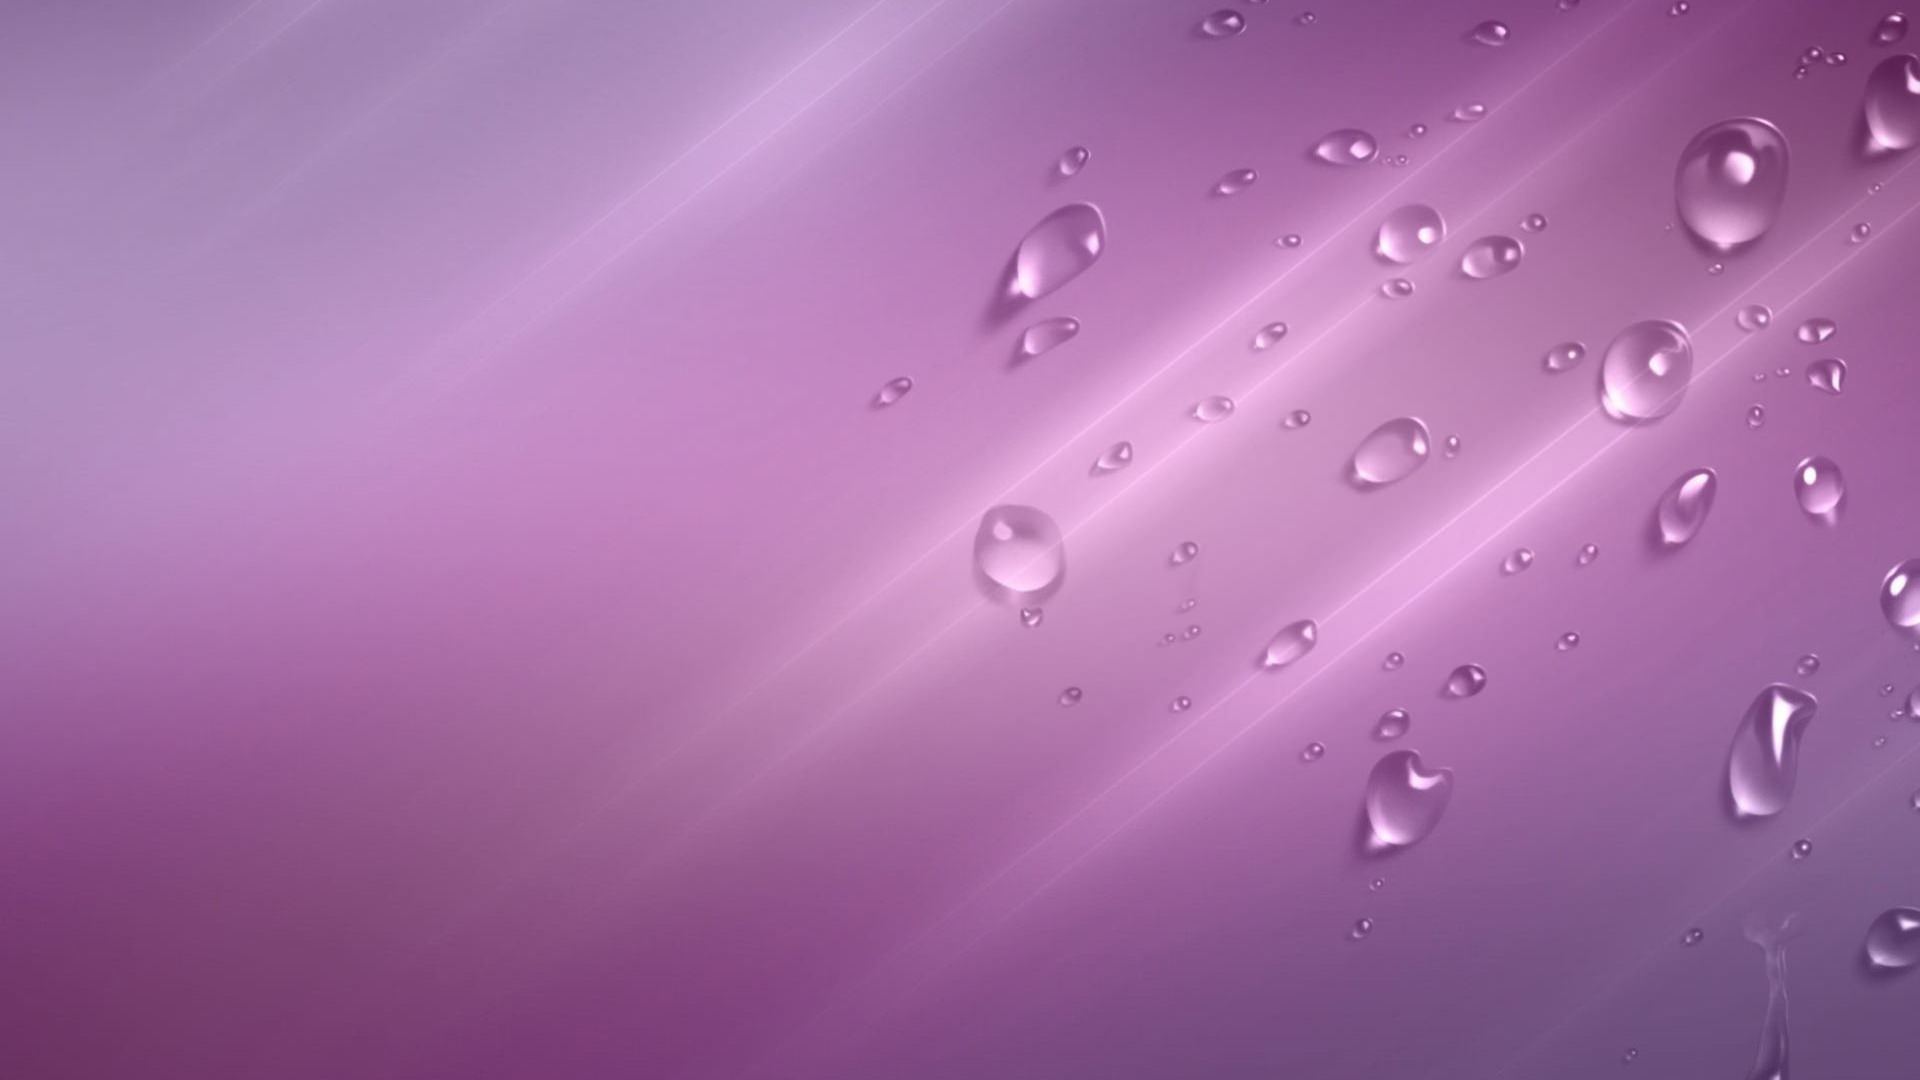 Bubble Plain Purple Background